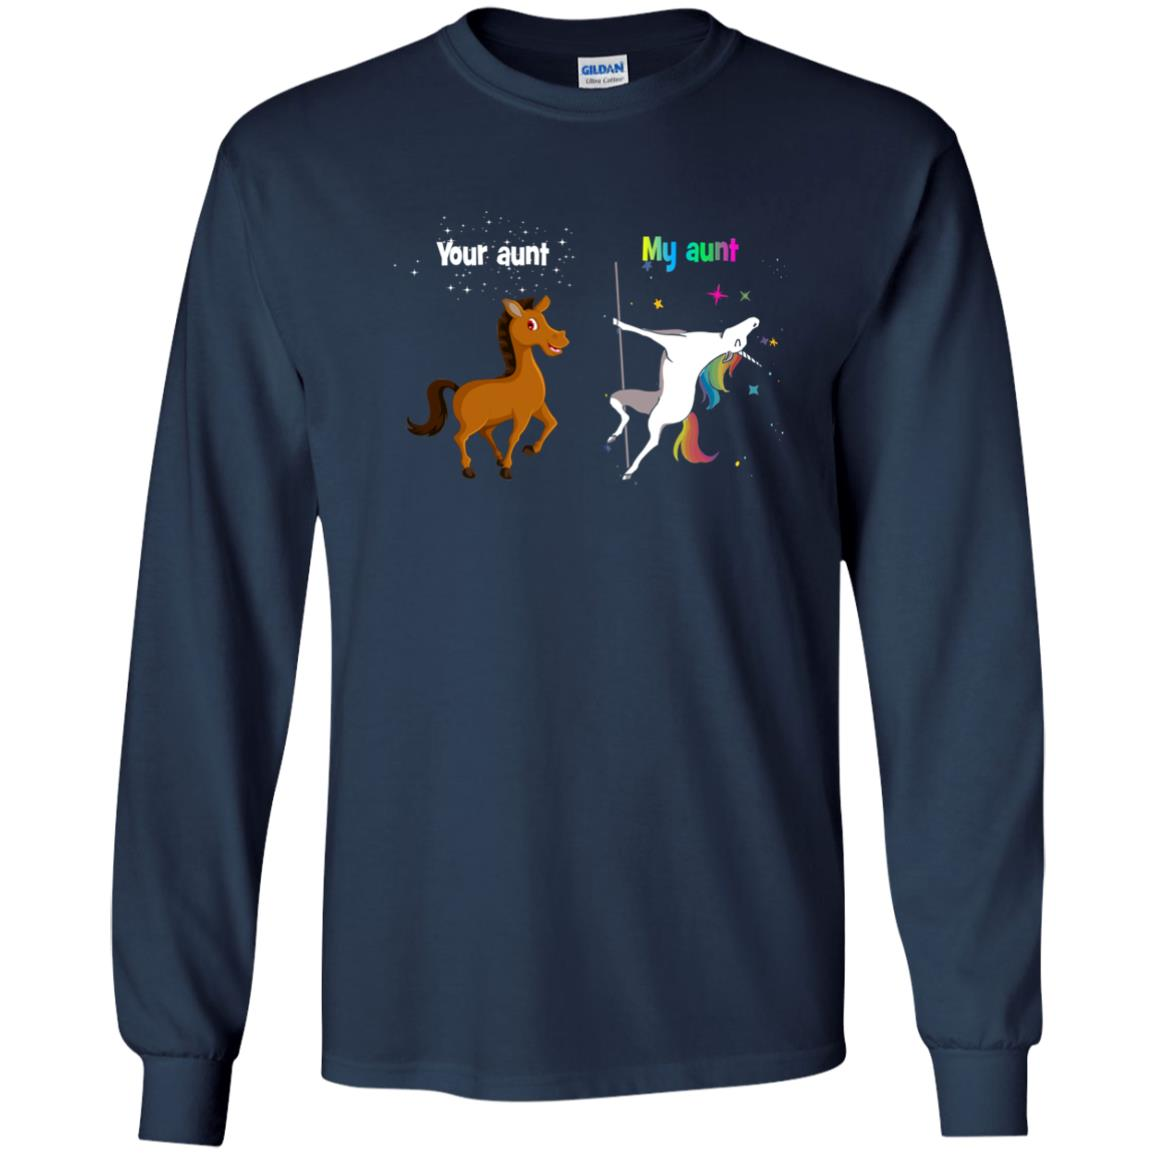 image 948px My aunt unicorn vs your aunt horse youth t shirt